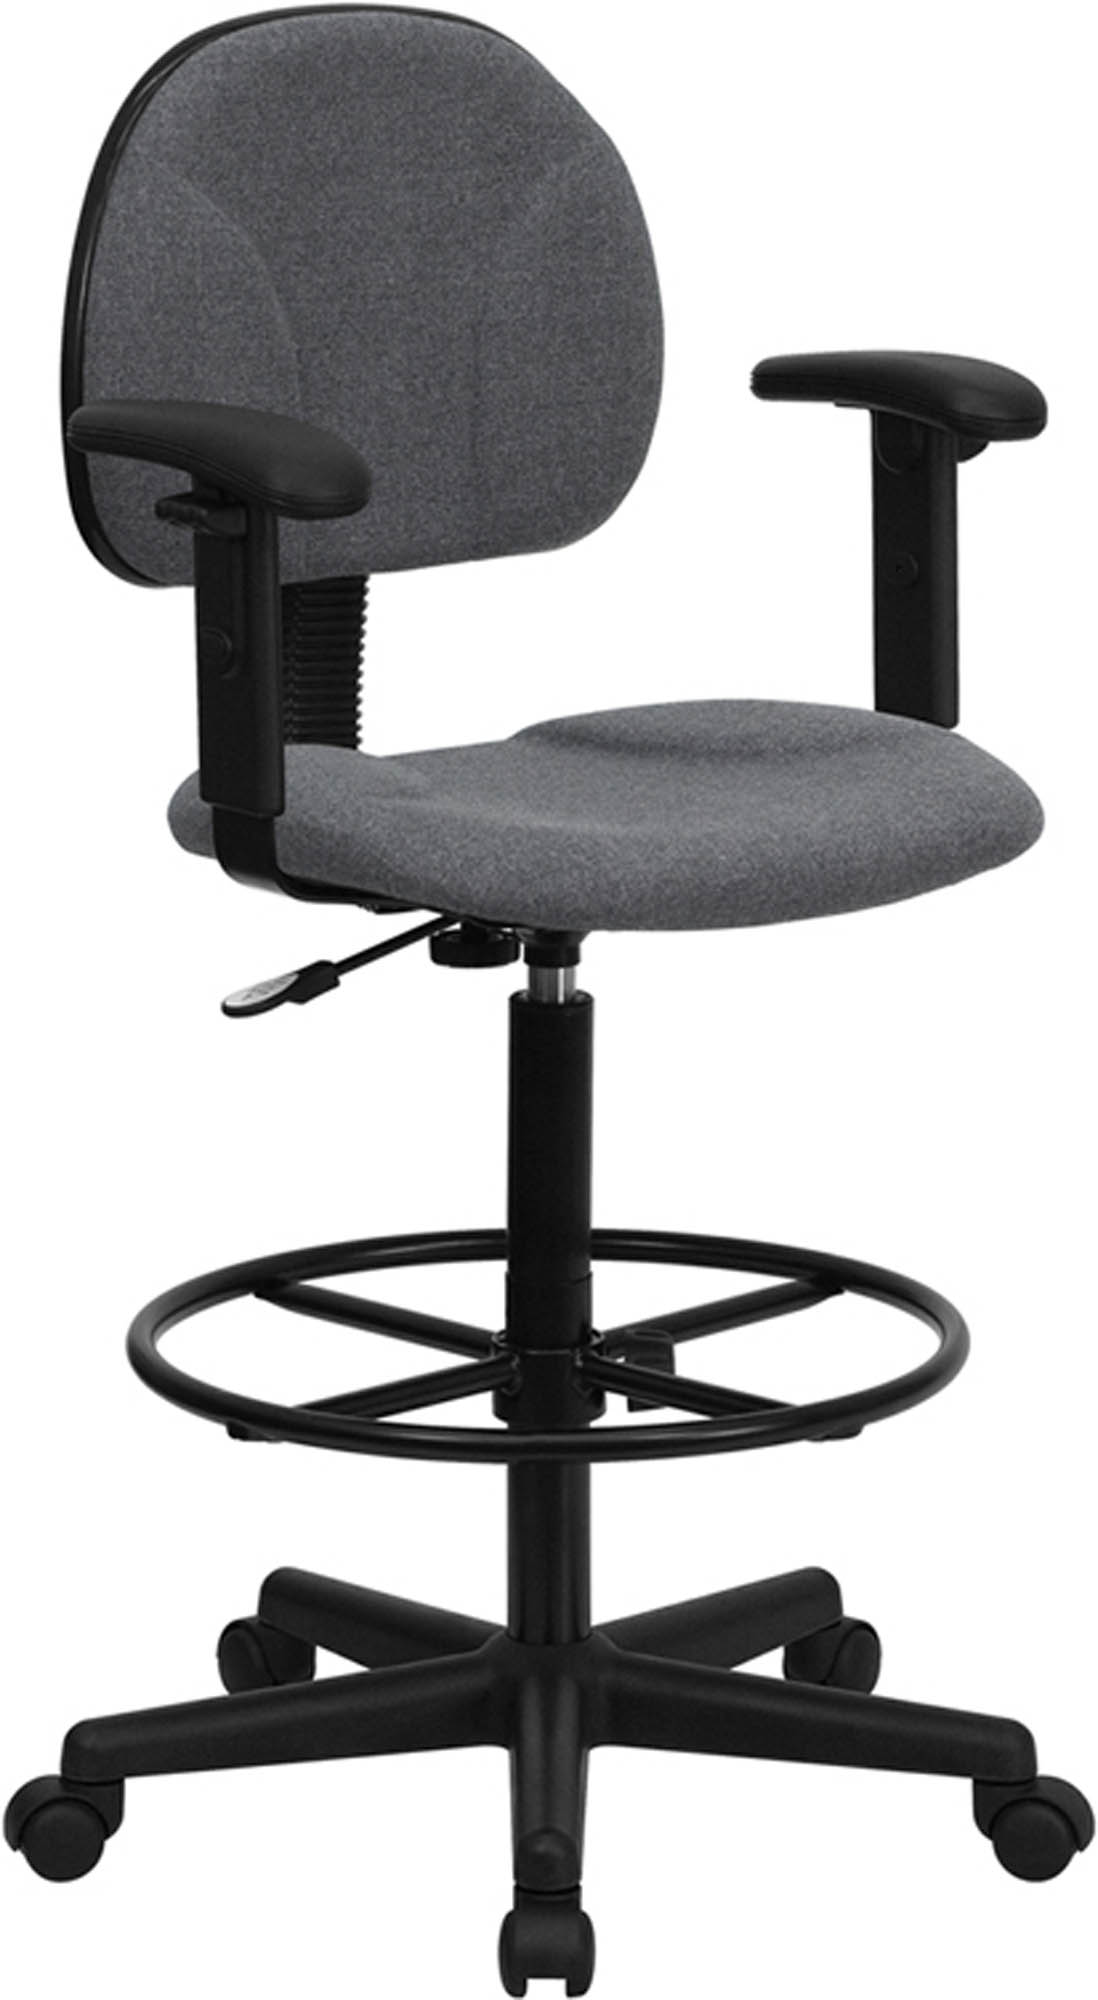 Offex BT-659-GRY-ARMS-GG Gray Fabric Drafting Stool with Arms (Adjustable Range 26'-30.5'H or 22.5'-27'H)